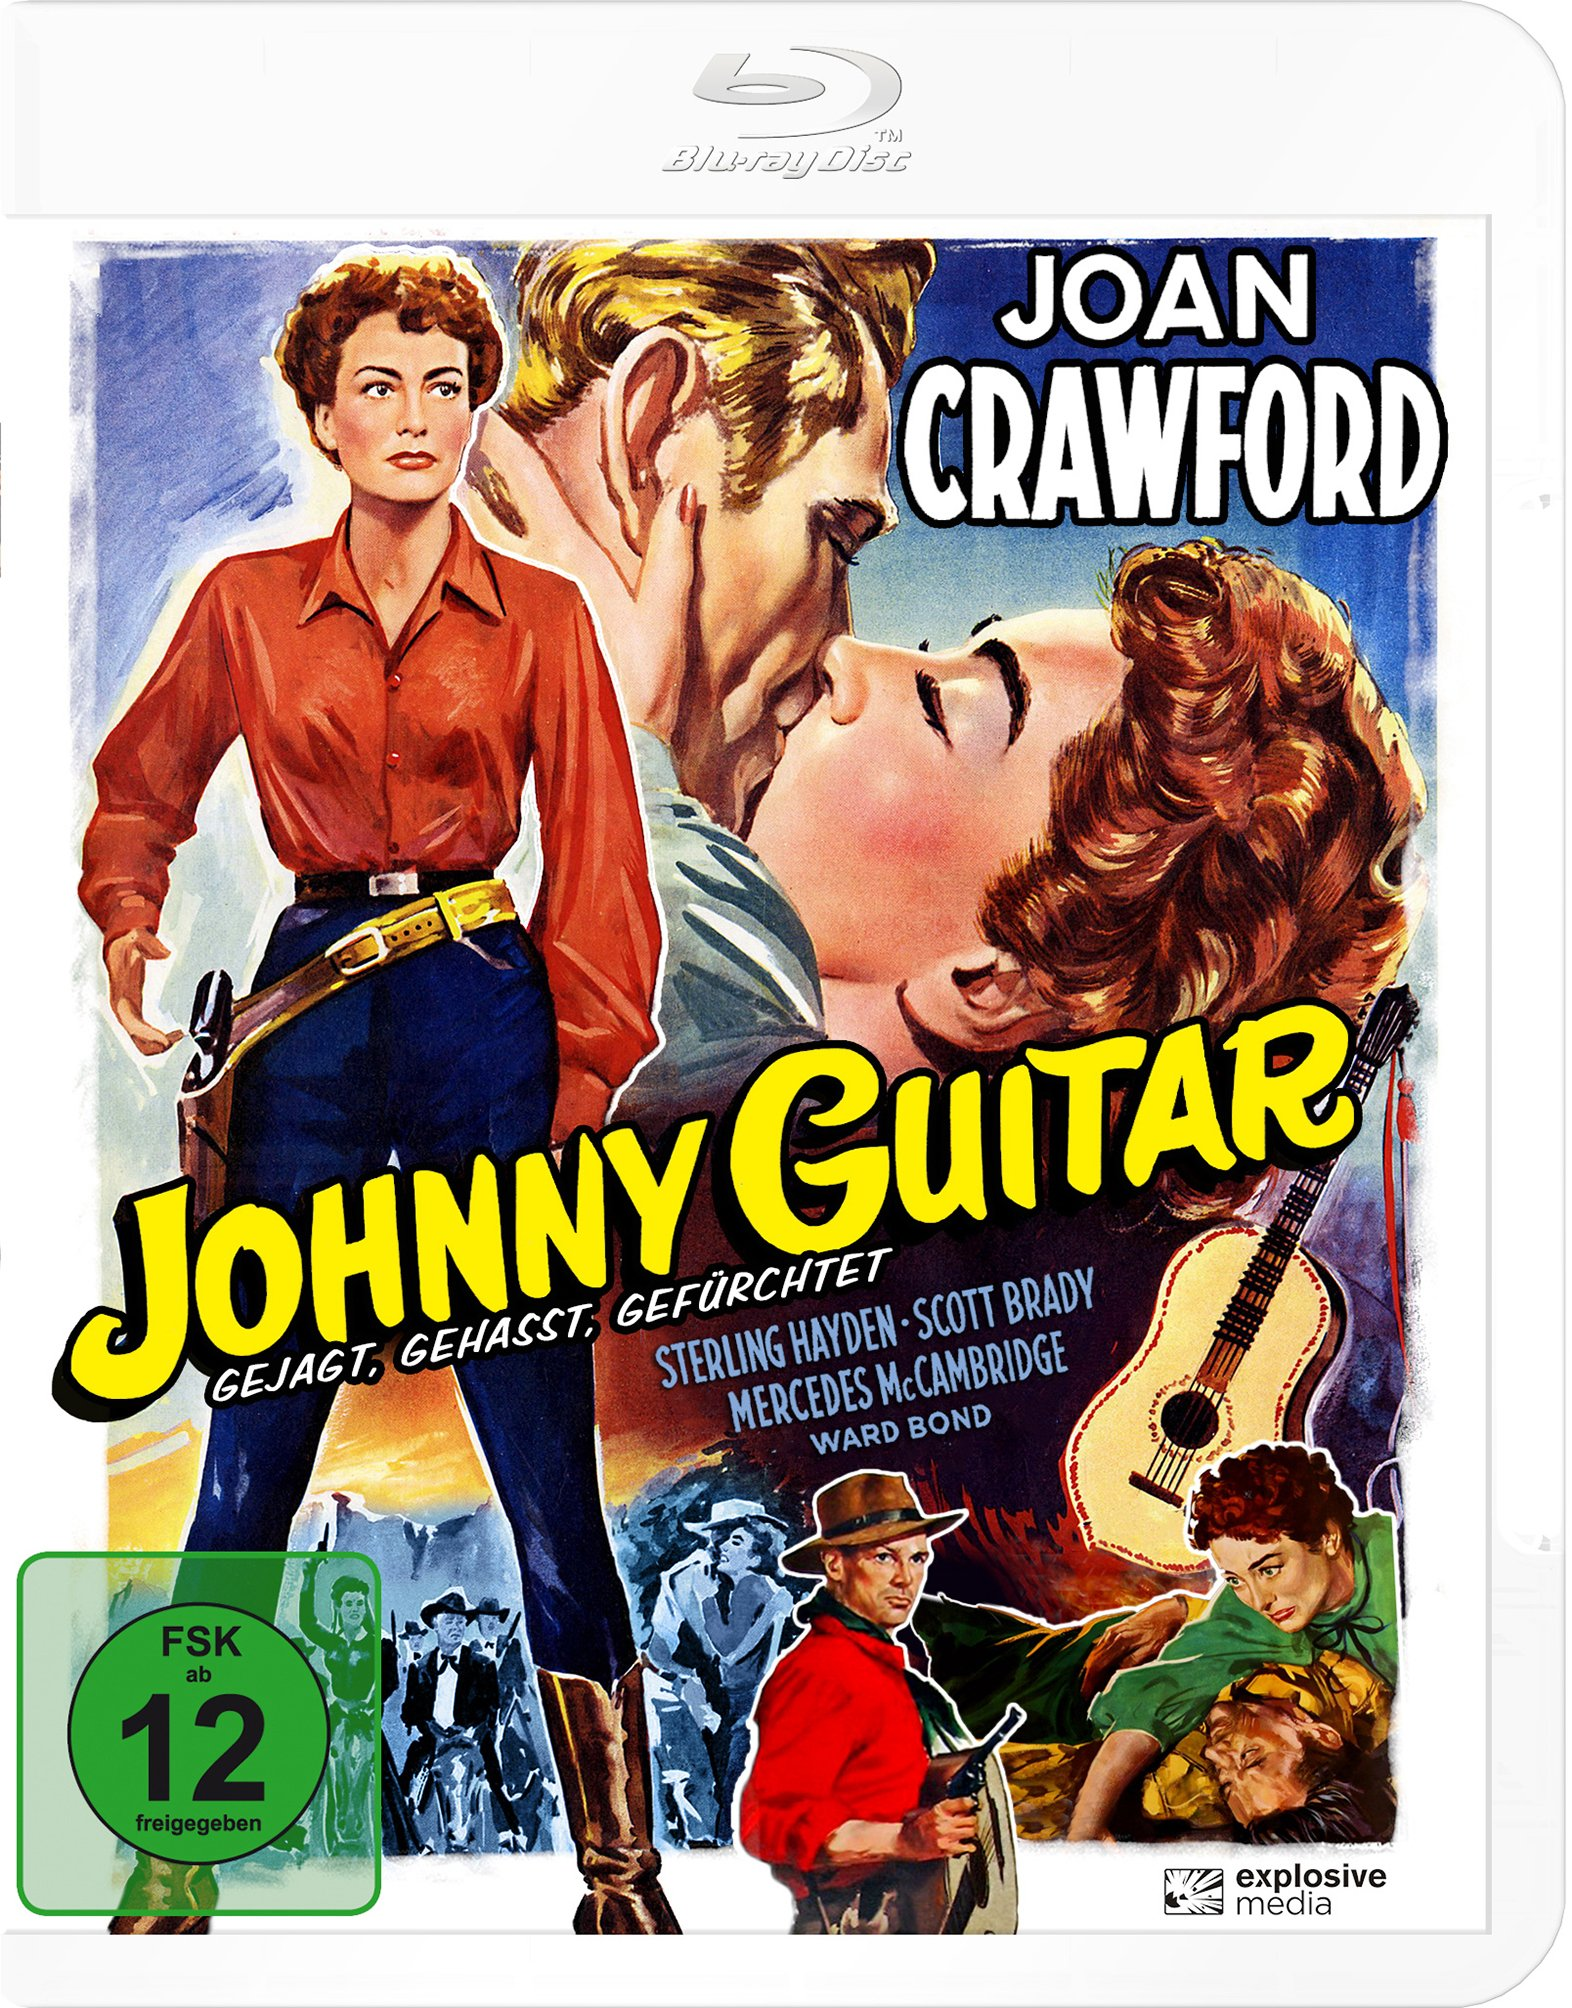 Johnny.Guitar.Gejagt.gehasst.gefuerchtet.1954.German.DL.1080p.BluRay.x264-iNKLUSiON